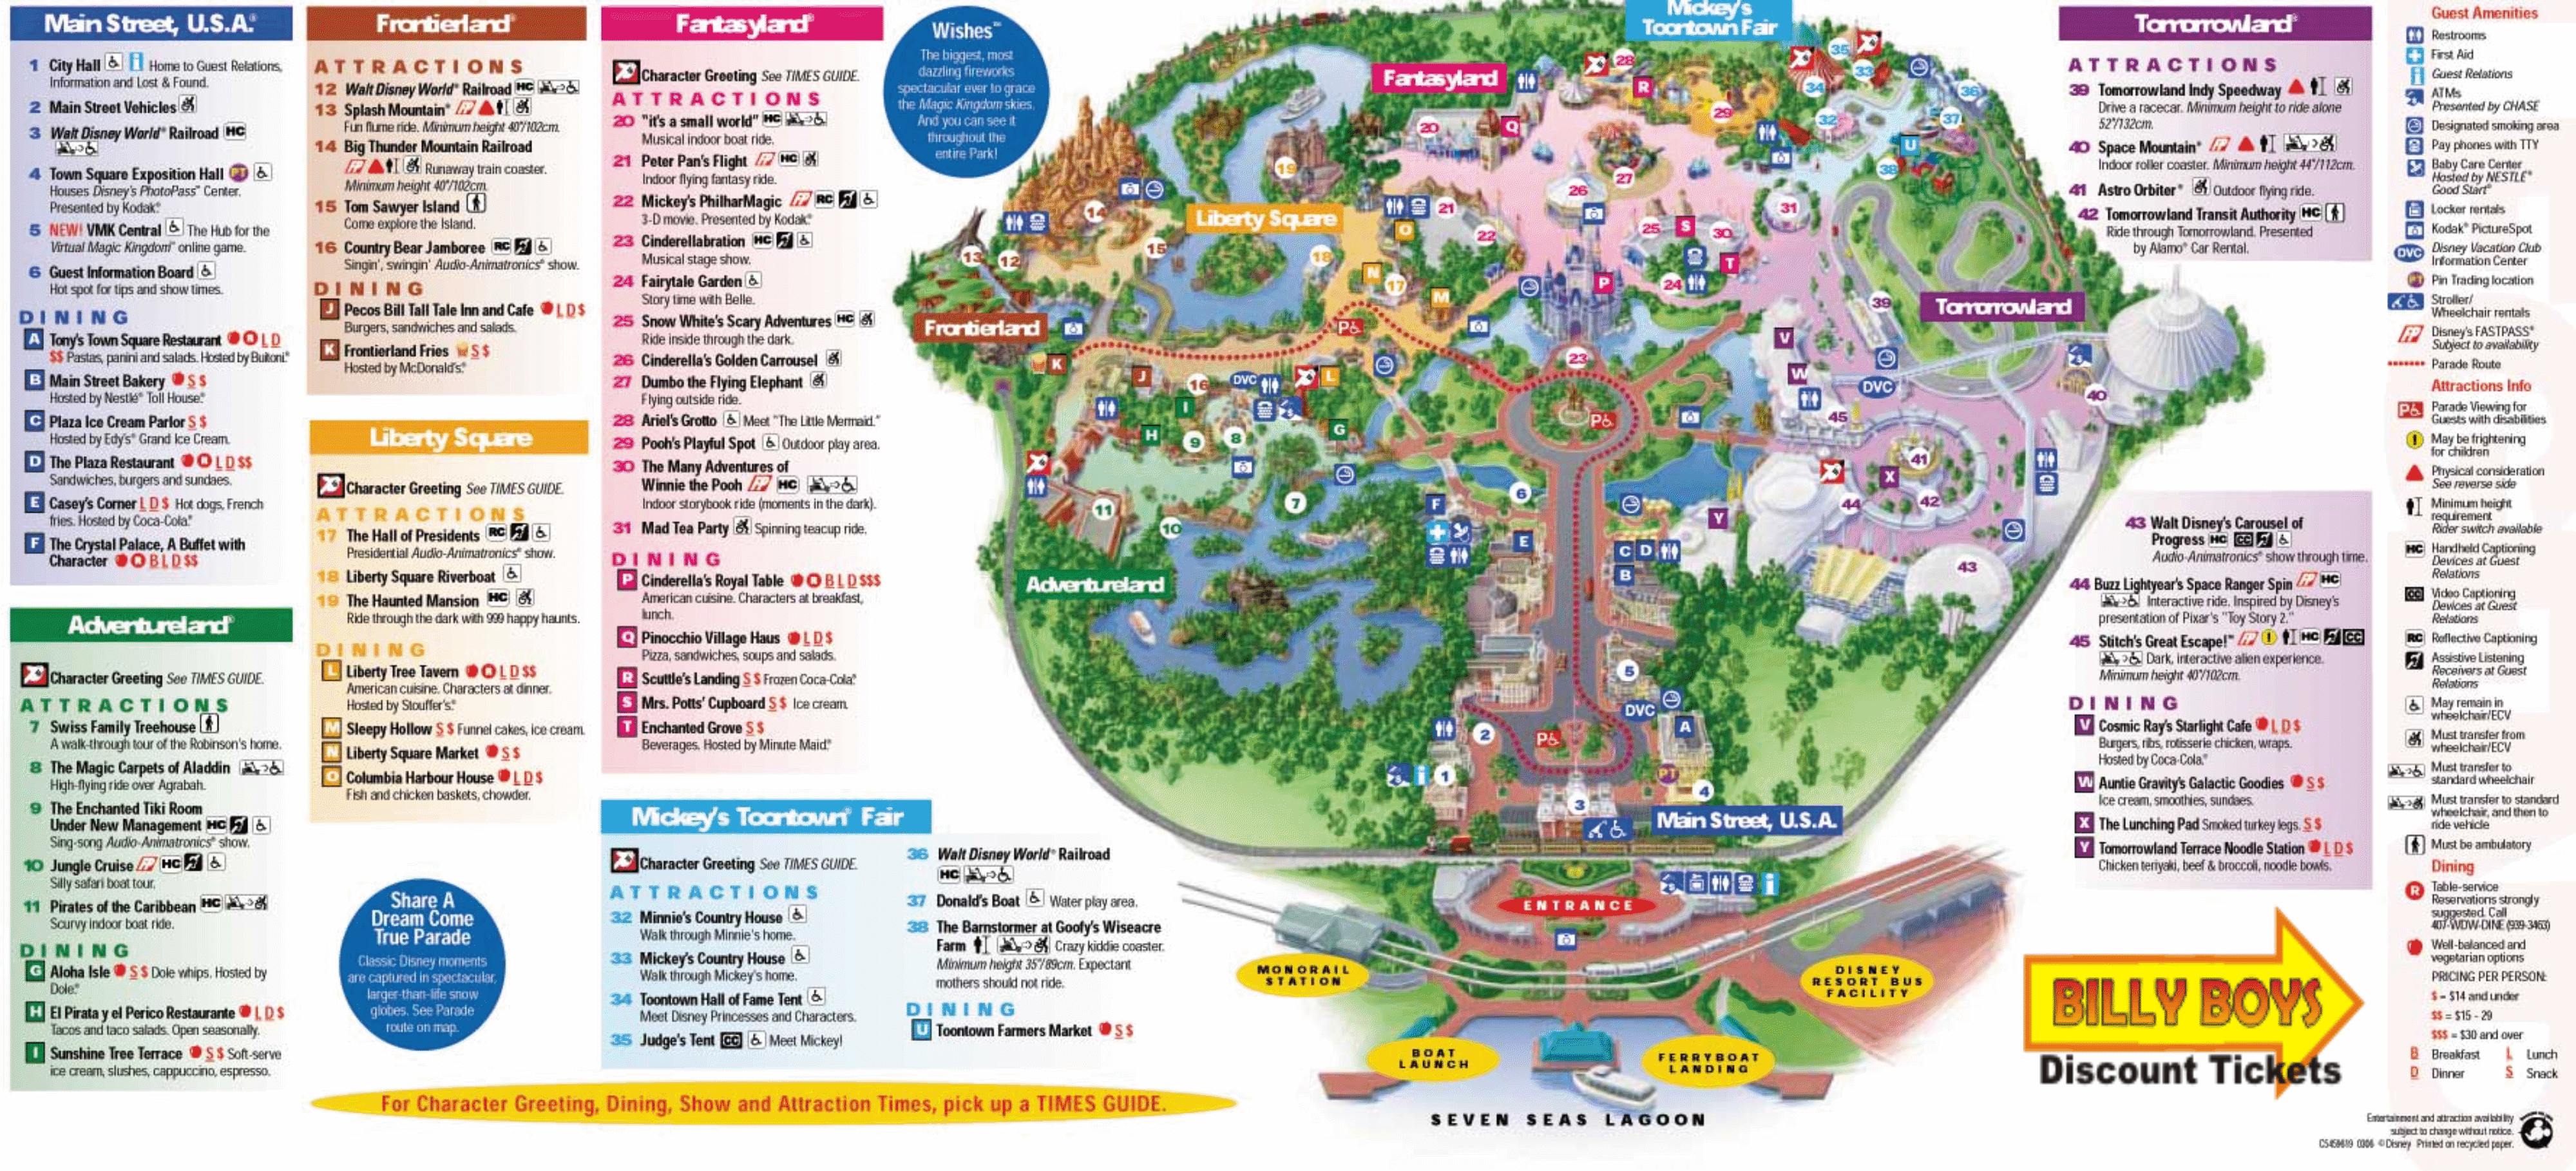 Disney World Florida Map From Ambergontrail 3 - Judecelestin2010 - Map Of Florida Showing Disney World